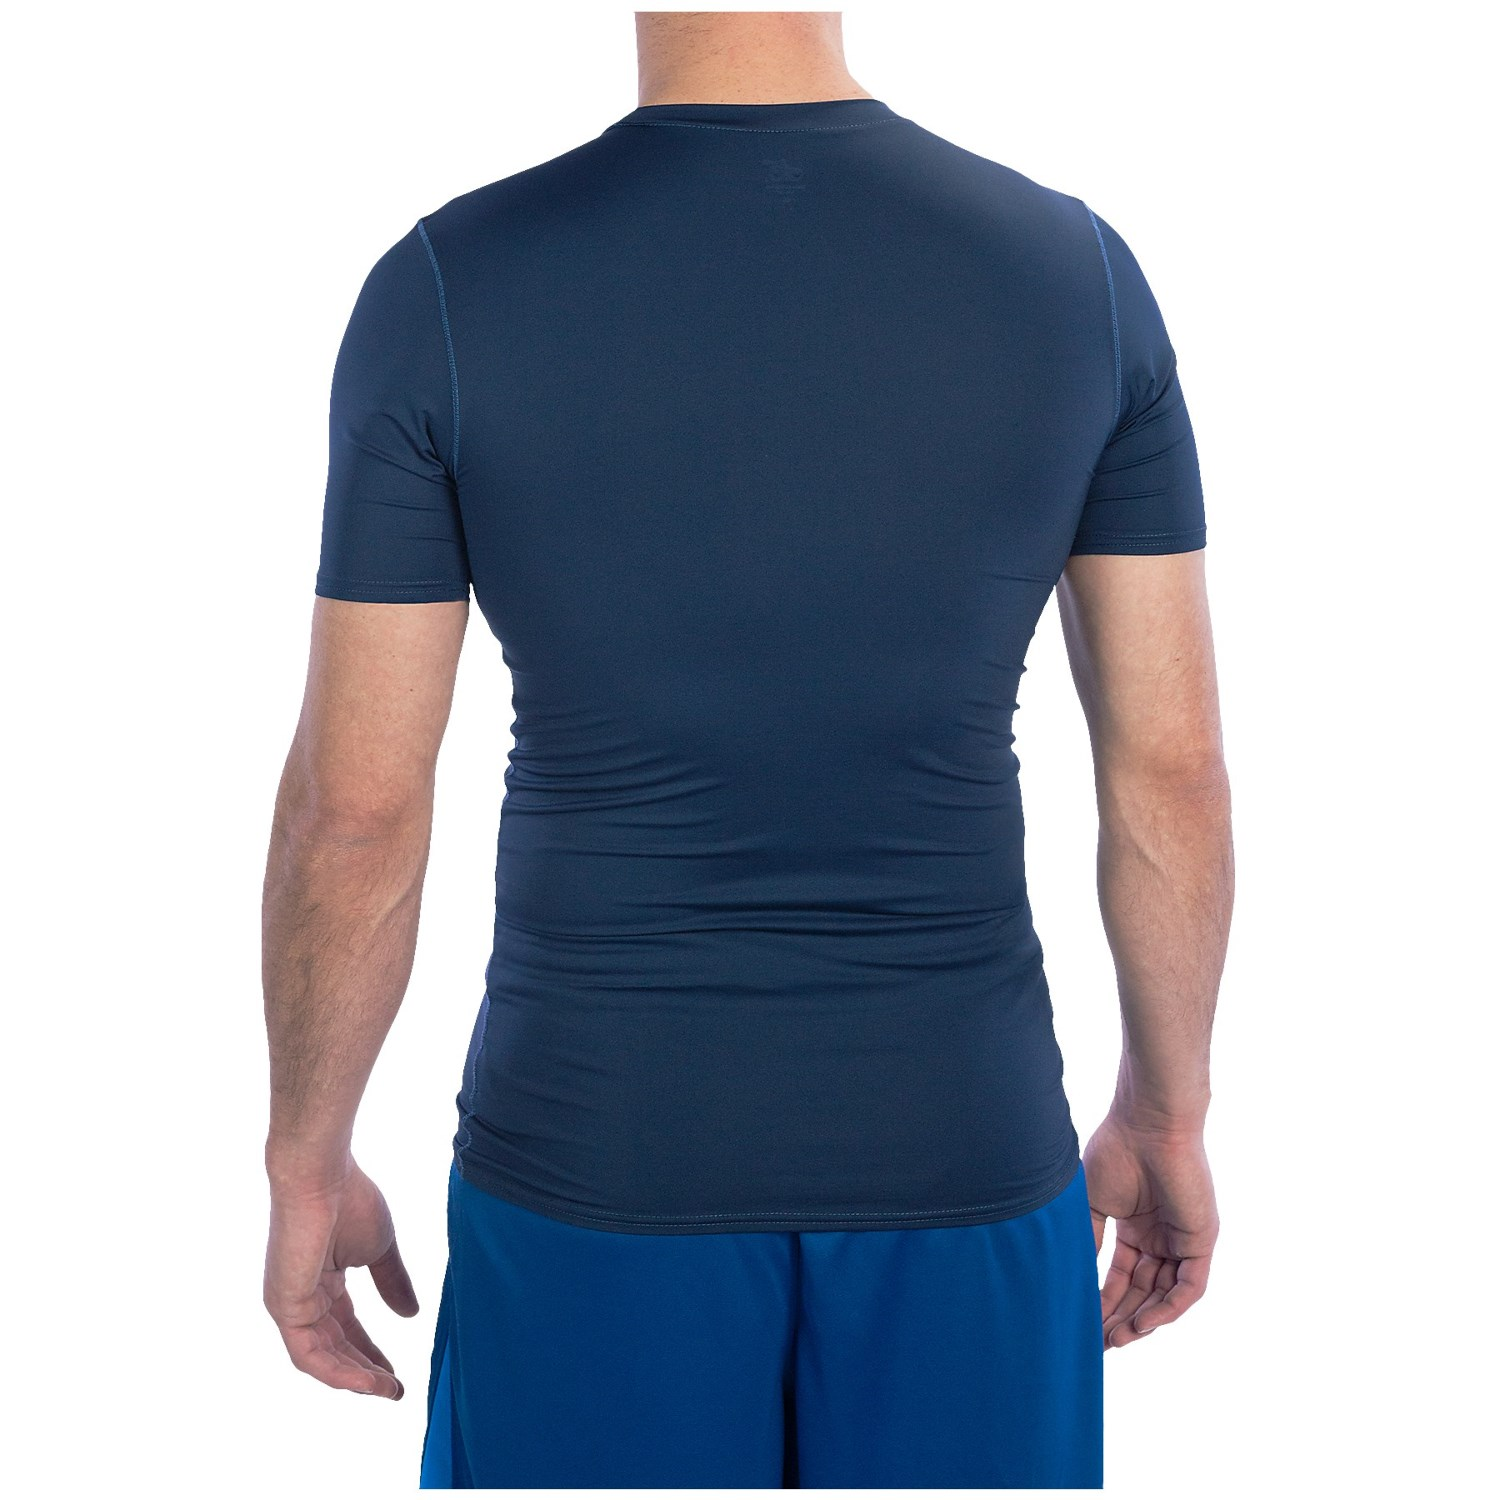 Alo compression t shirt for men 6777d save 38 for Compression tee shirts for men